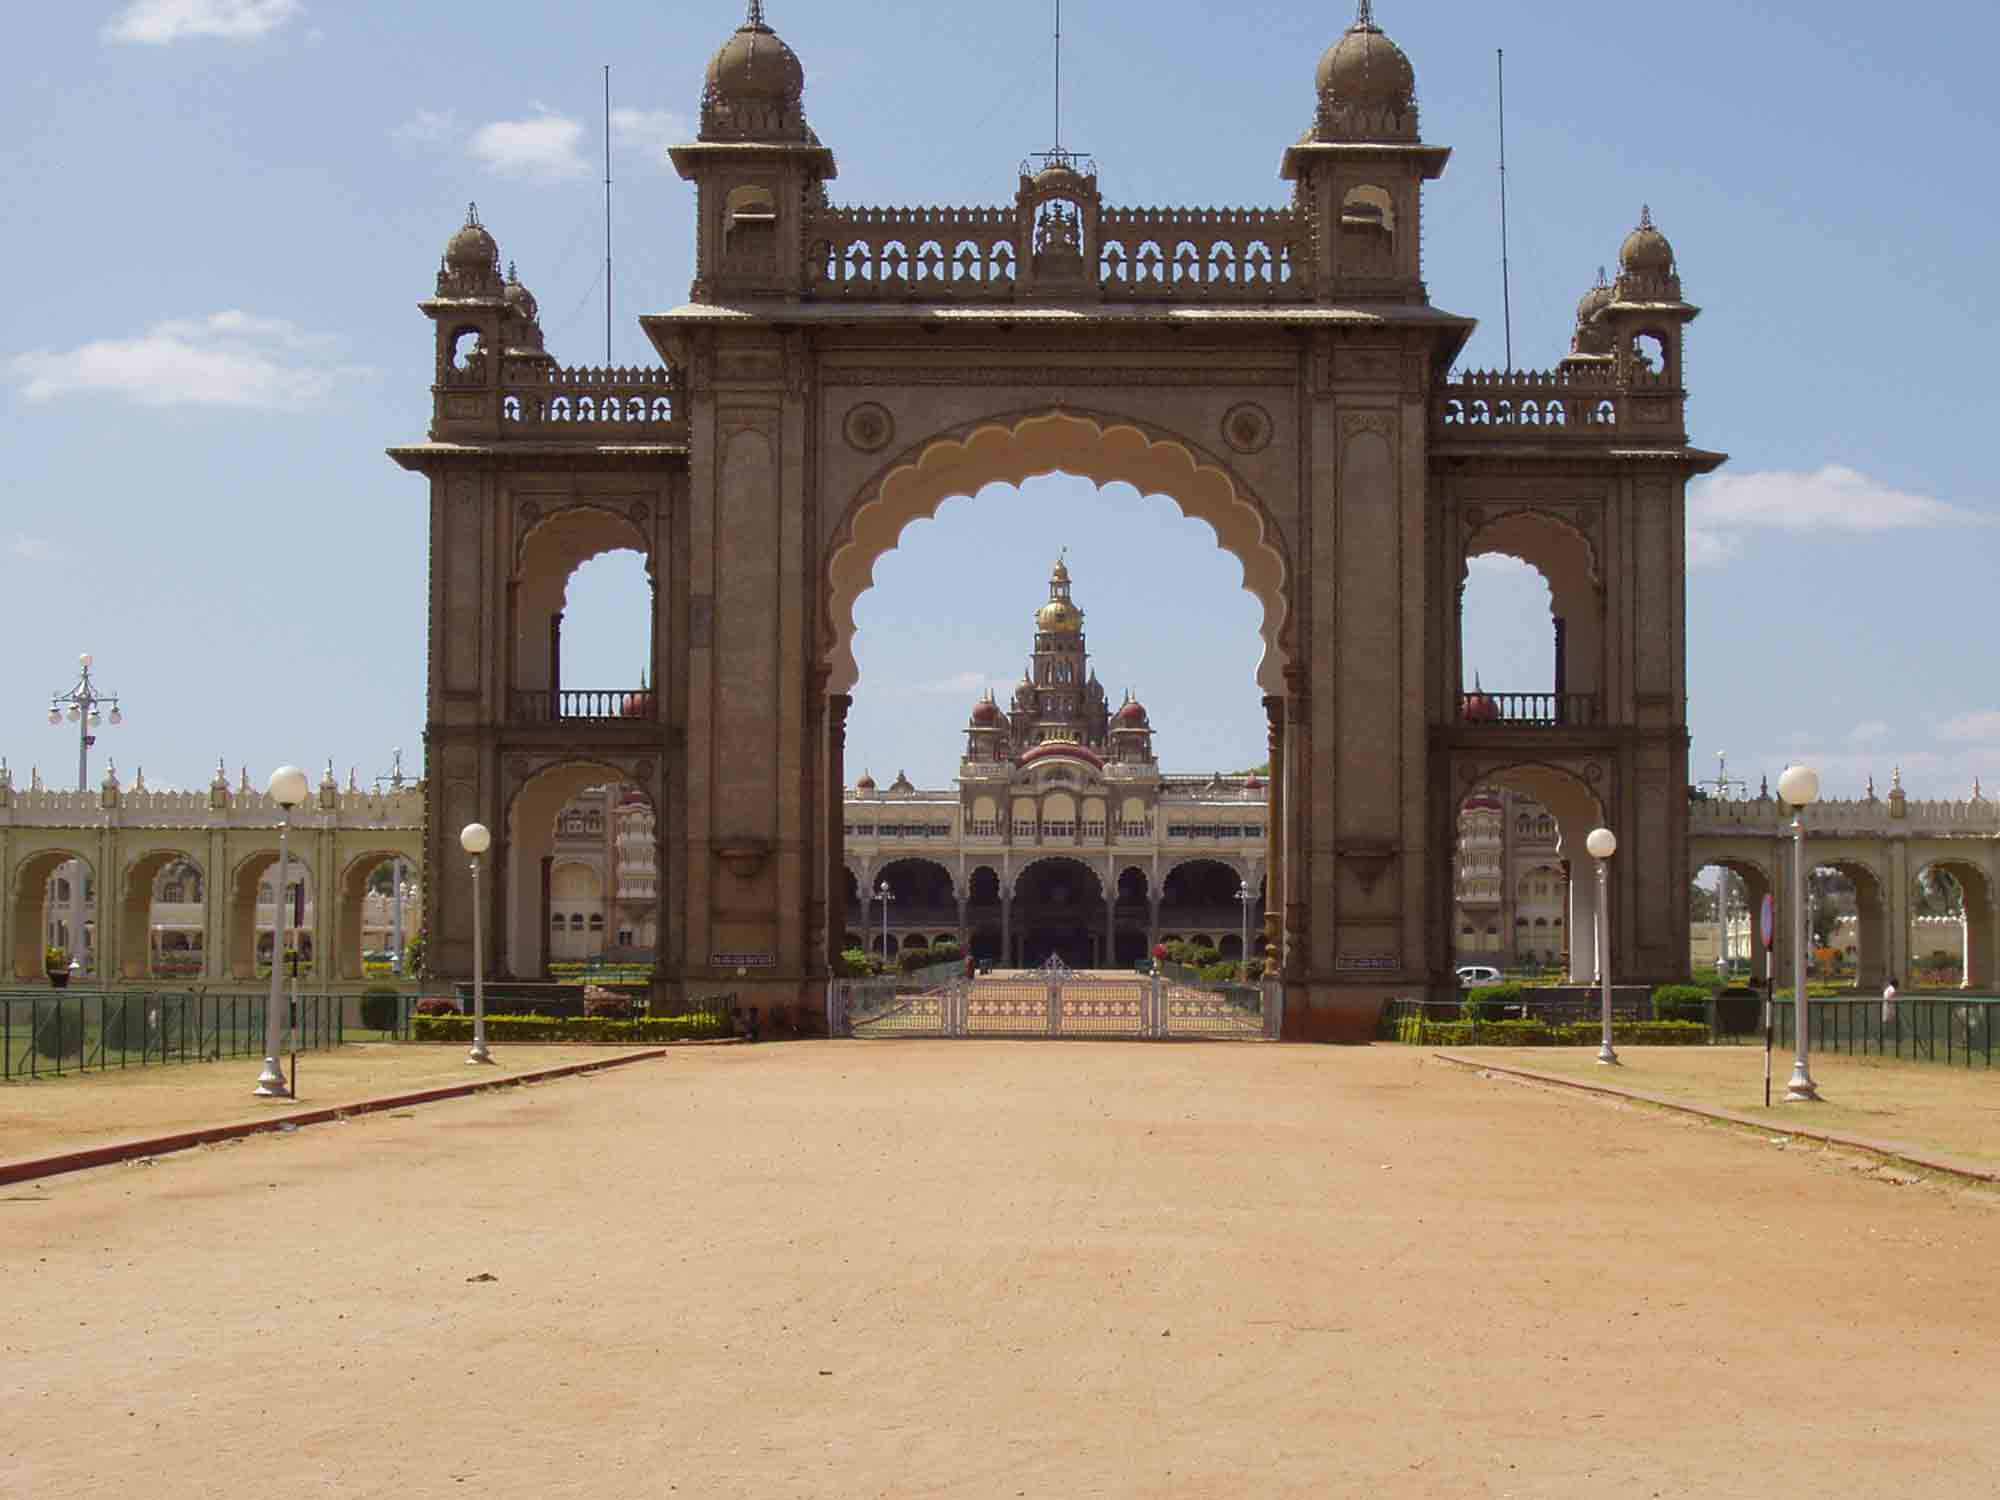 The massive entrance gate to the palace